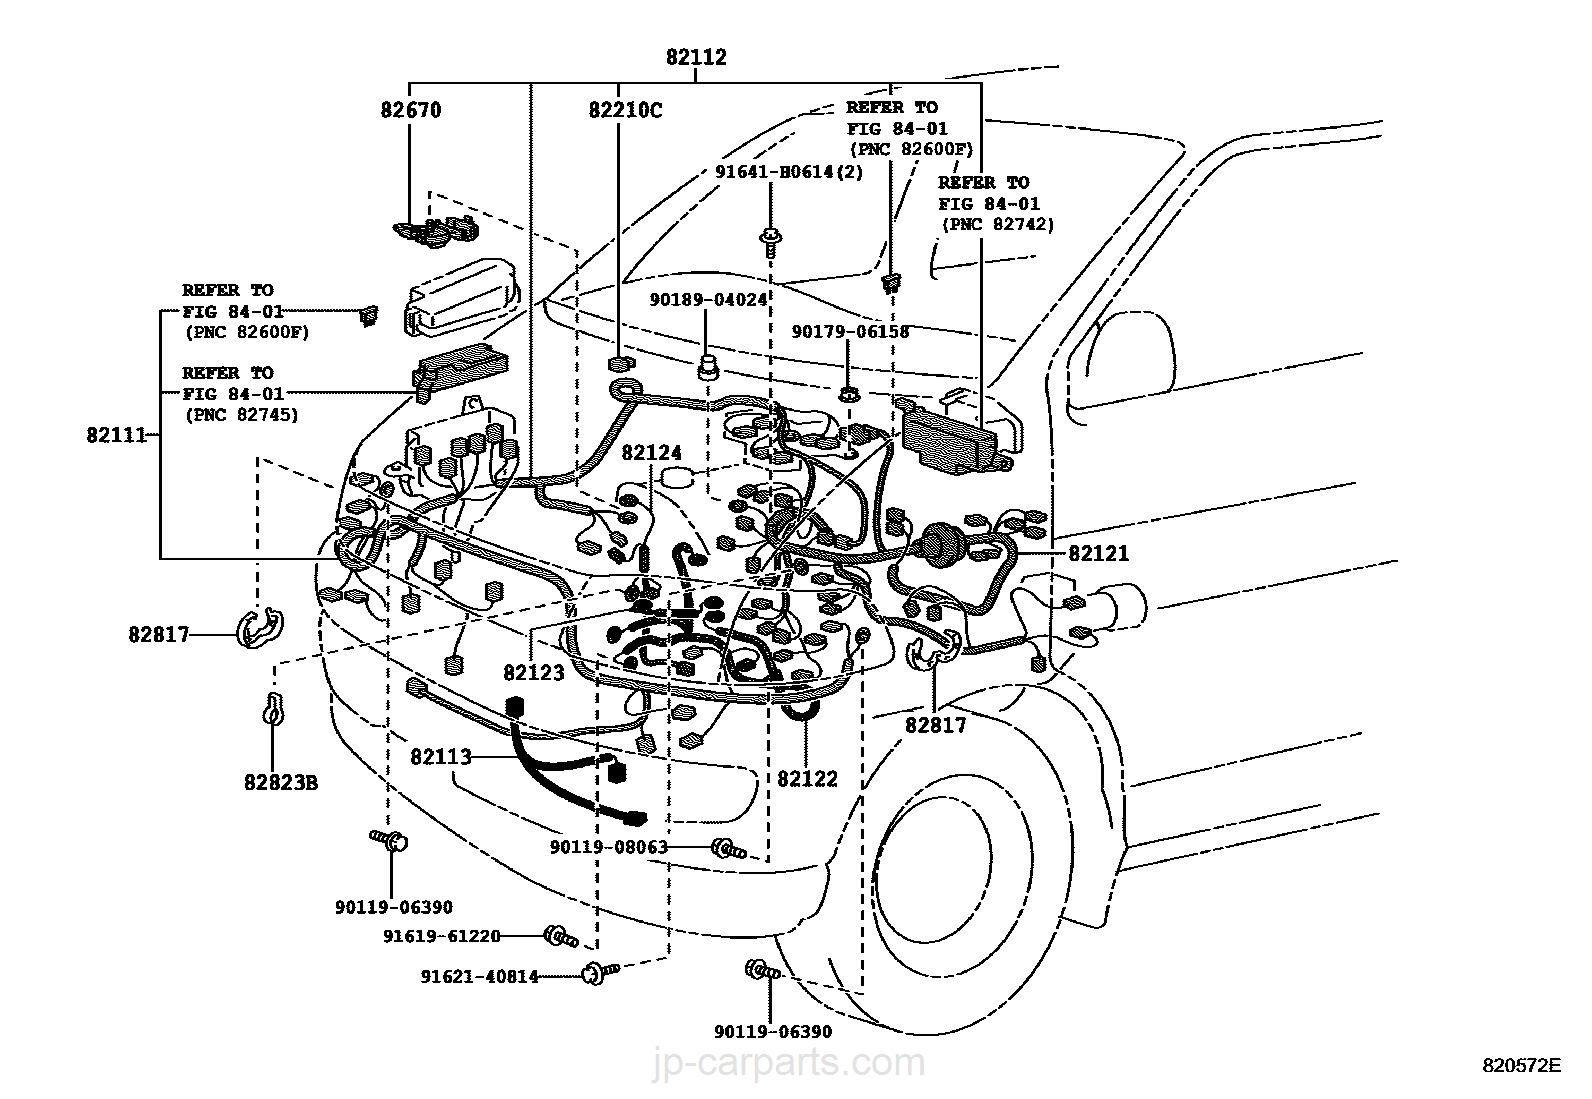 T9747983 Mitsubishi starwagon l300 1990 in addition 683321 2003 Deville C Problem 3 together with Opc mr2oc additionally 415051 Vacuum Diagram as well Belt Location 1993 Toyota Paseo. on 1993 toyota tercel engine diagram